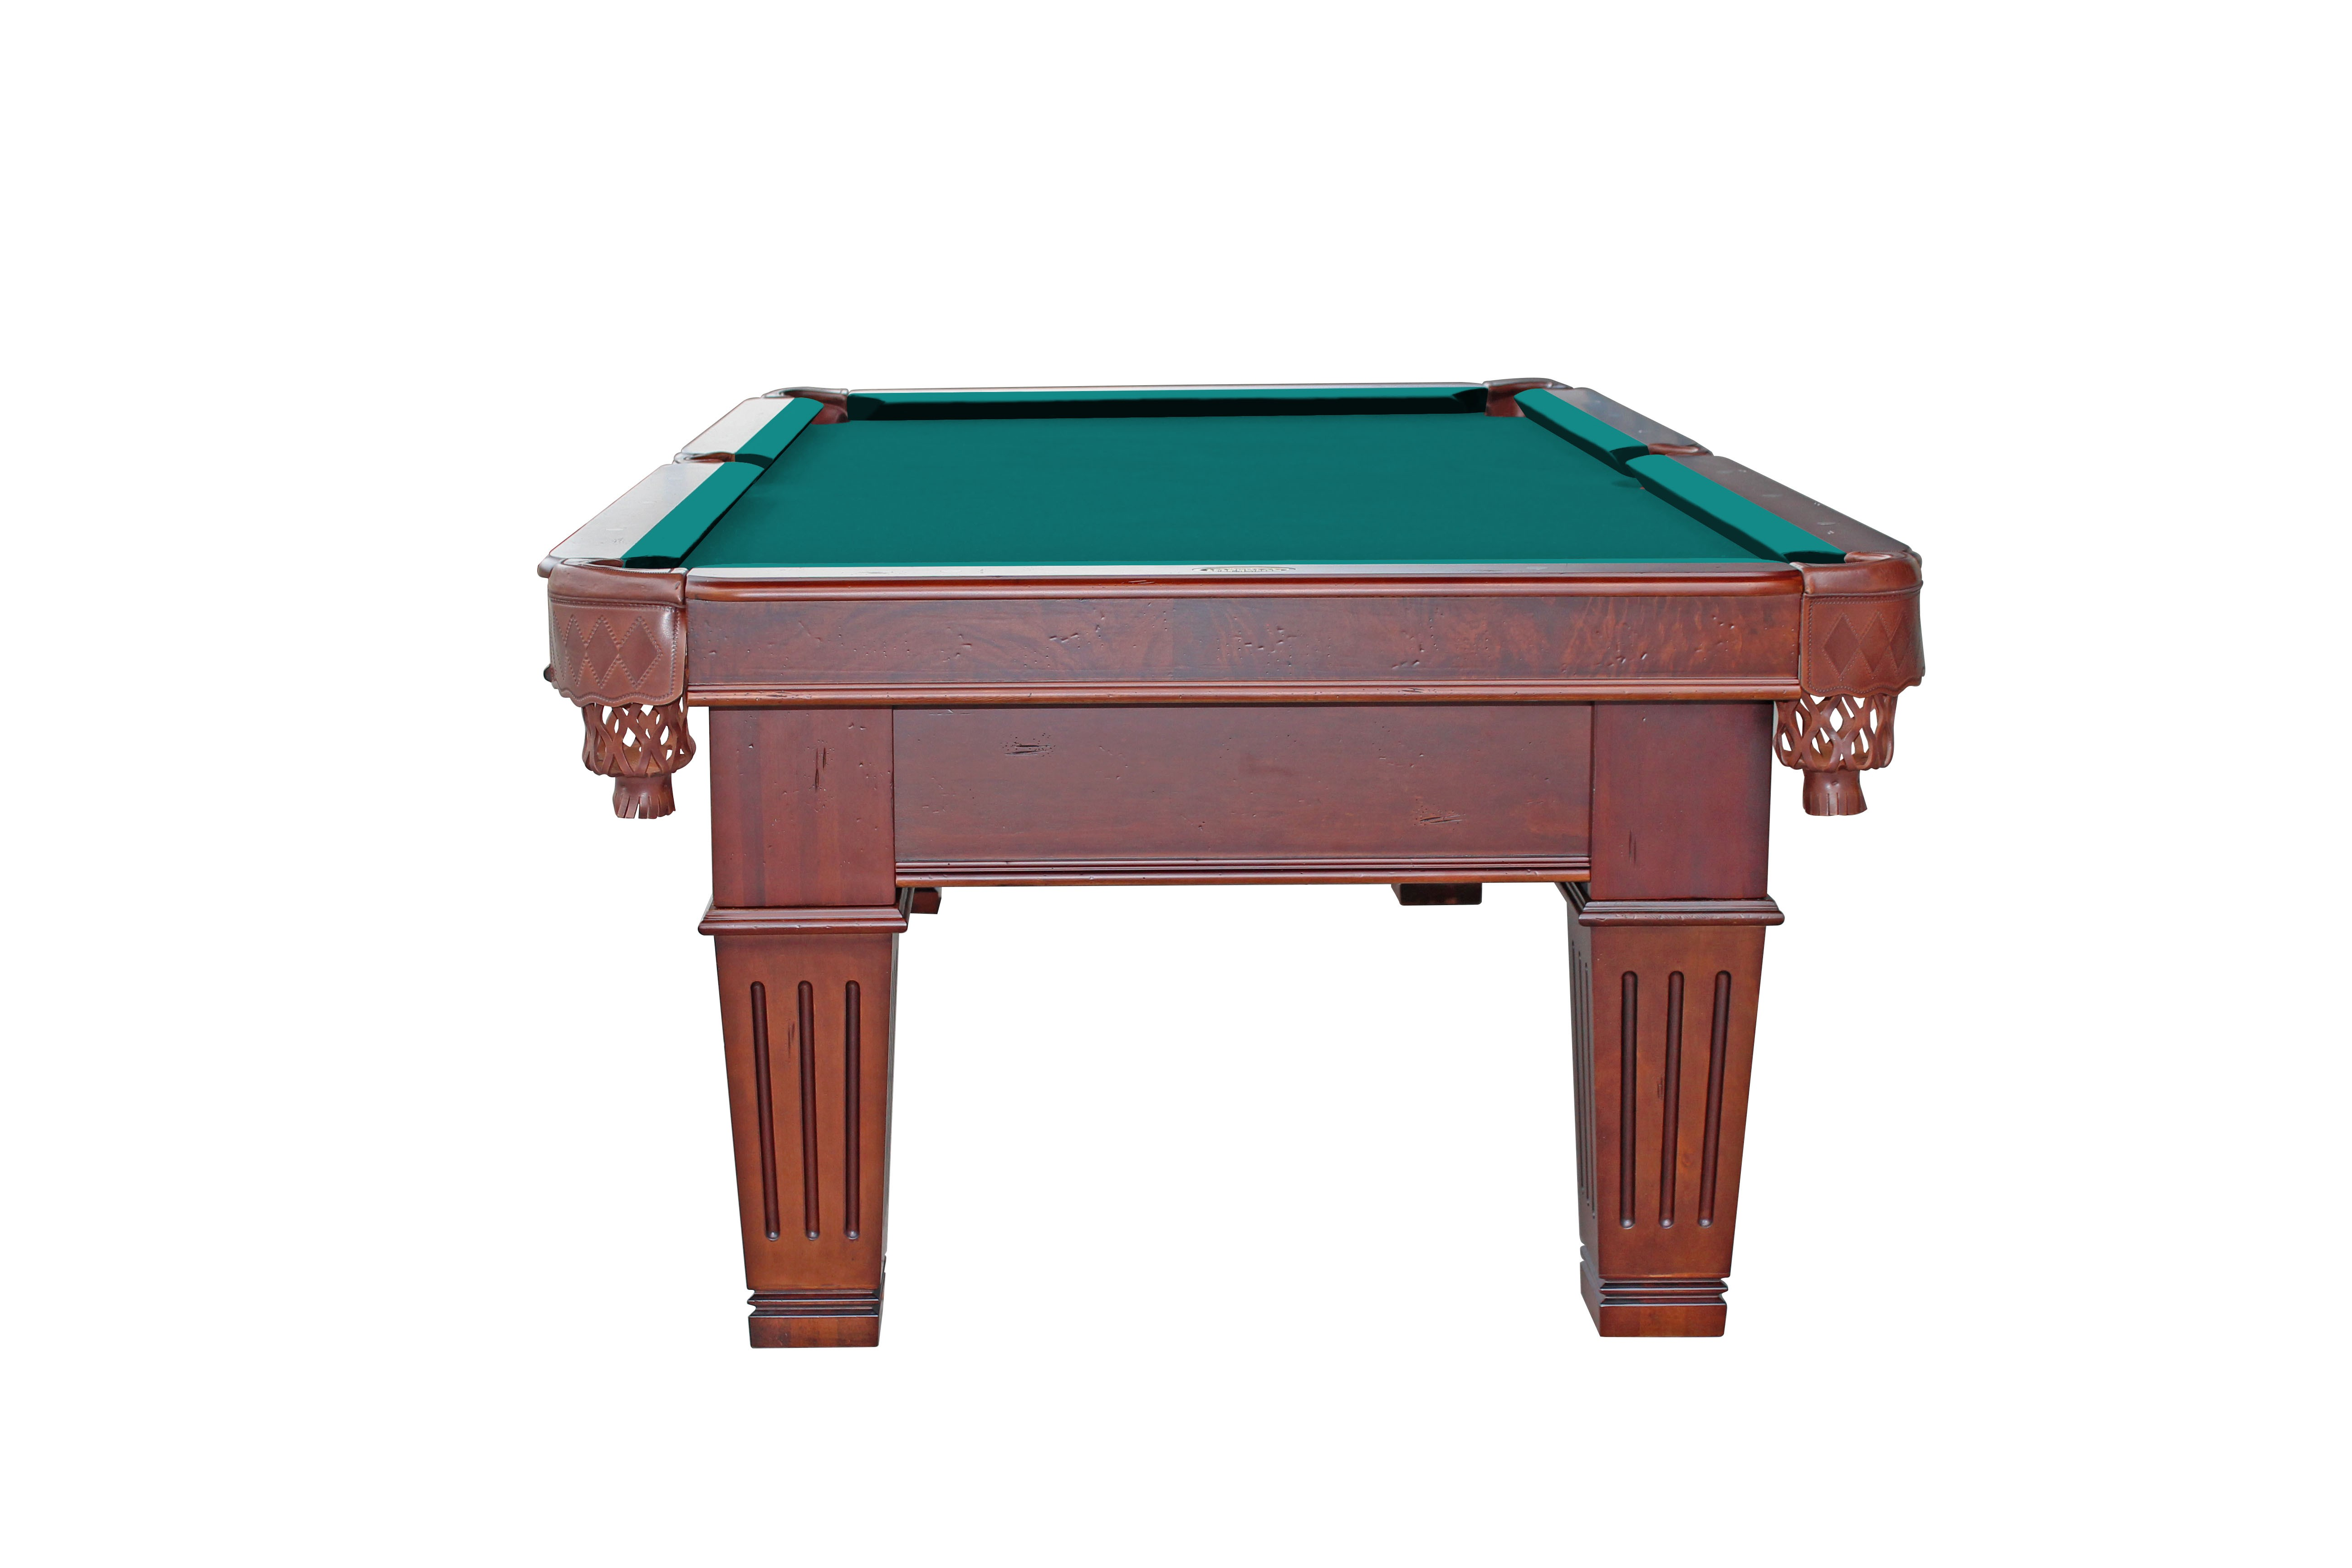 King Reno Billiards N More - Reno pool table